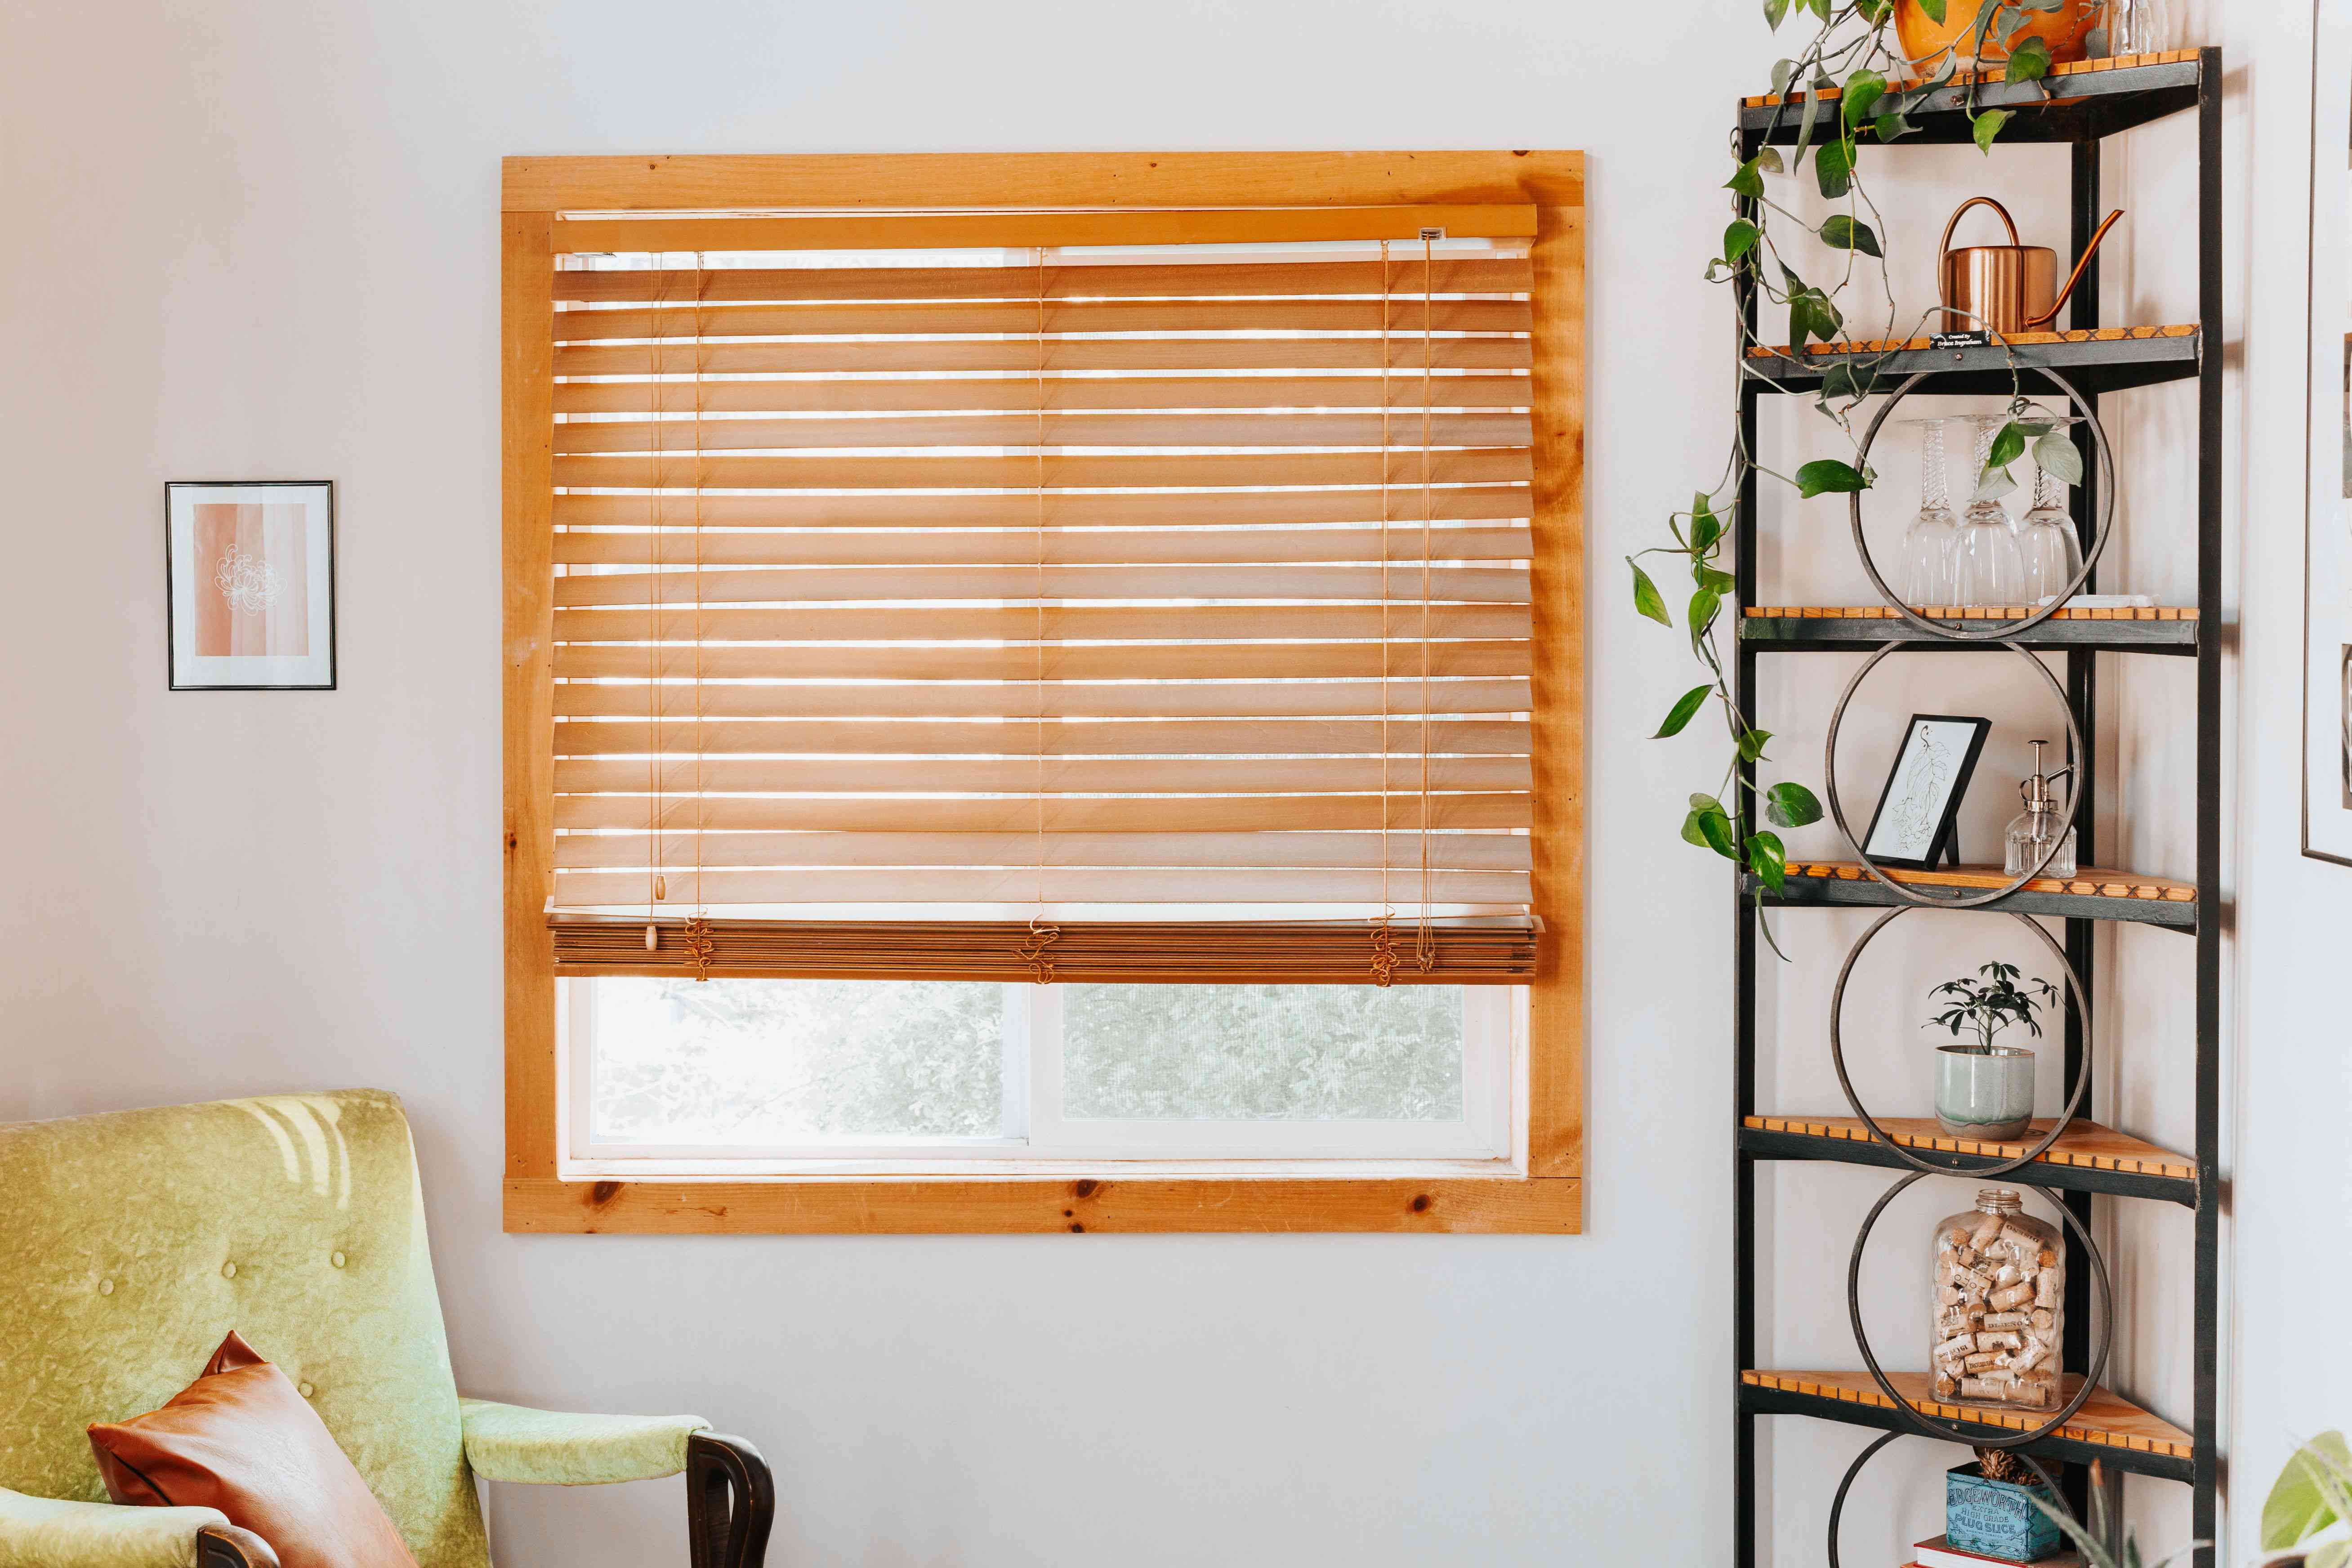 Wooden window blinds next to yellow chair and corner shelving with plants and decor items